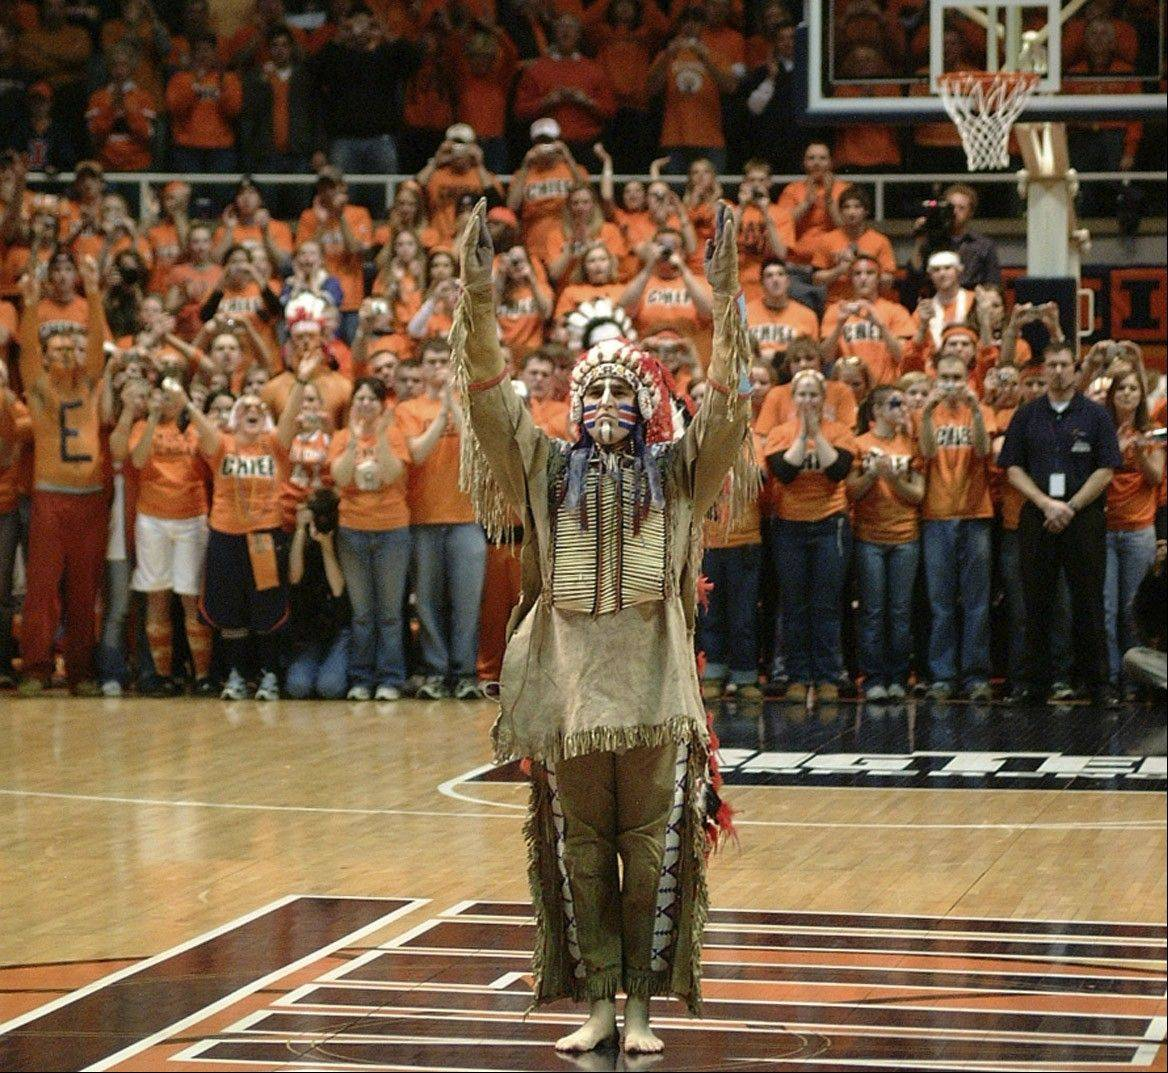 Illini reaches settlement with Chief Illiniwek group